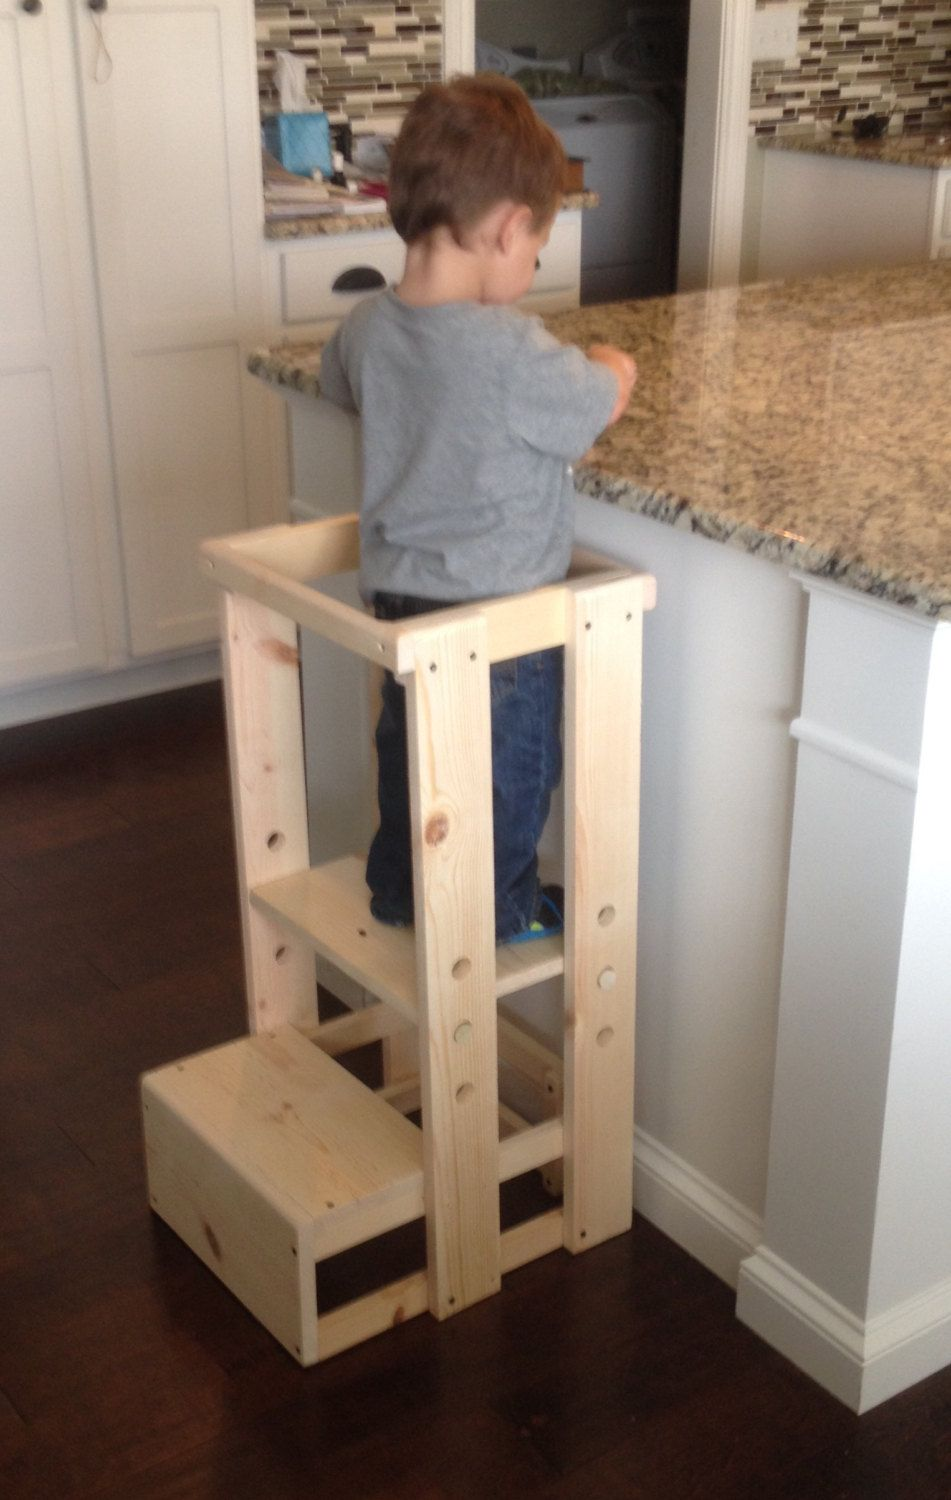 Enjoyable Toddler Step Stool Tot Tower Adjustable Step Stool Kids Caraccident5 Cool Chair Designs And Ideas Caraccident5Info